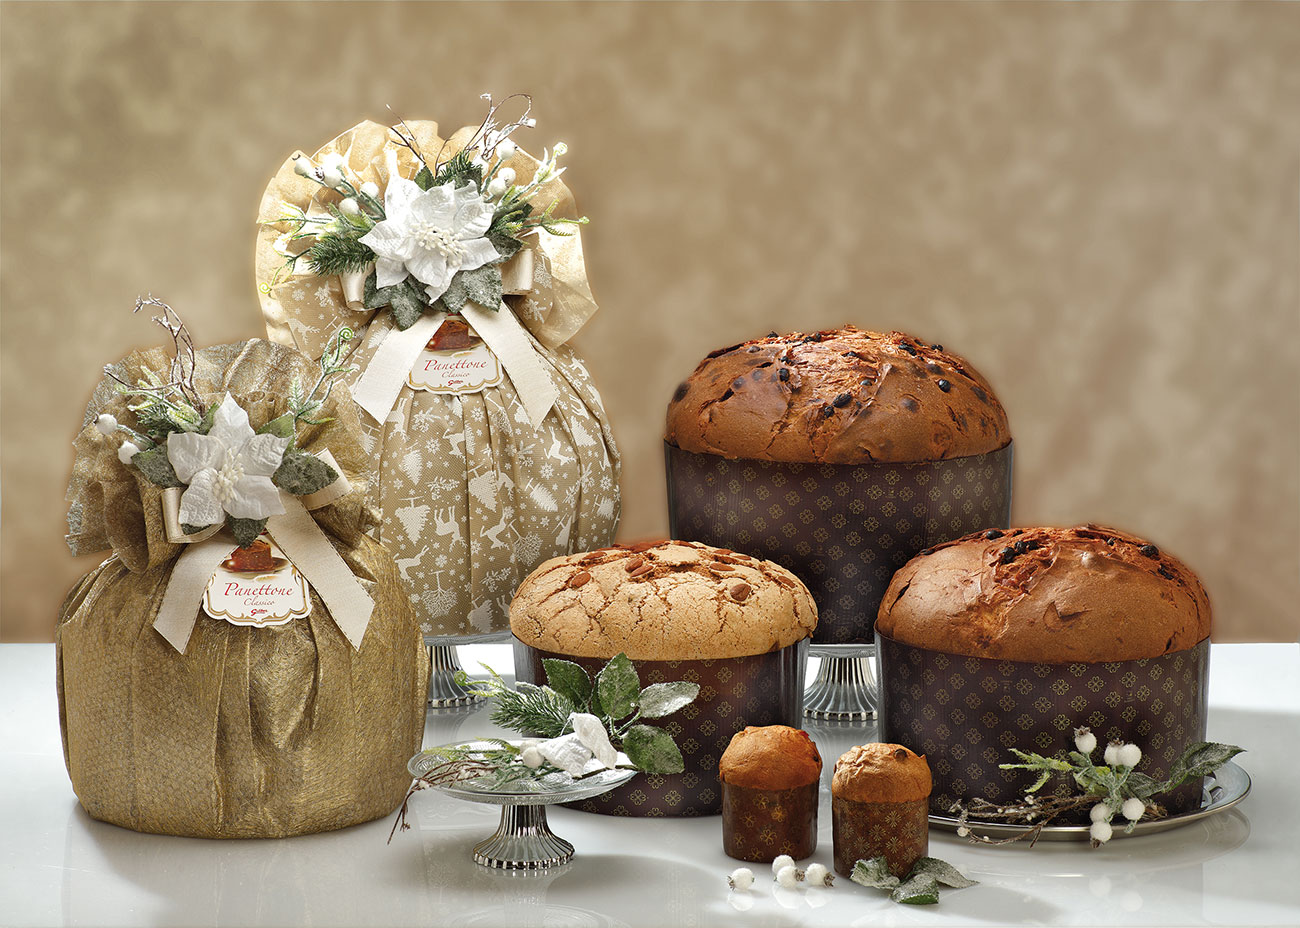 Panettone Classico Extra Groot (3 kg) in luxe papierverpakking